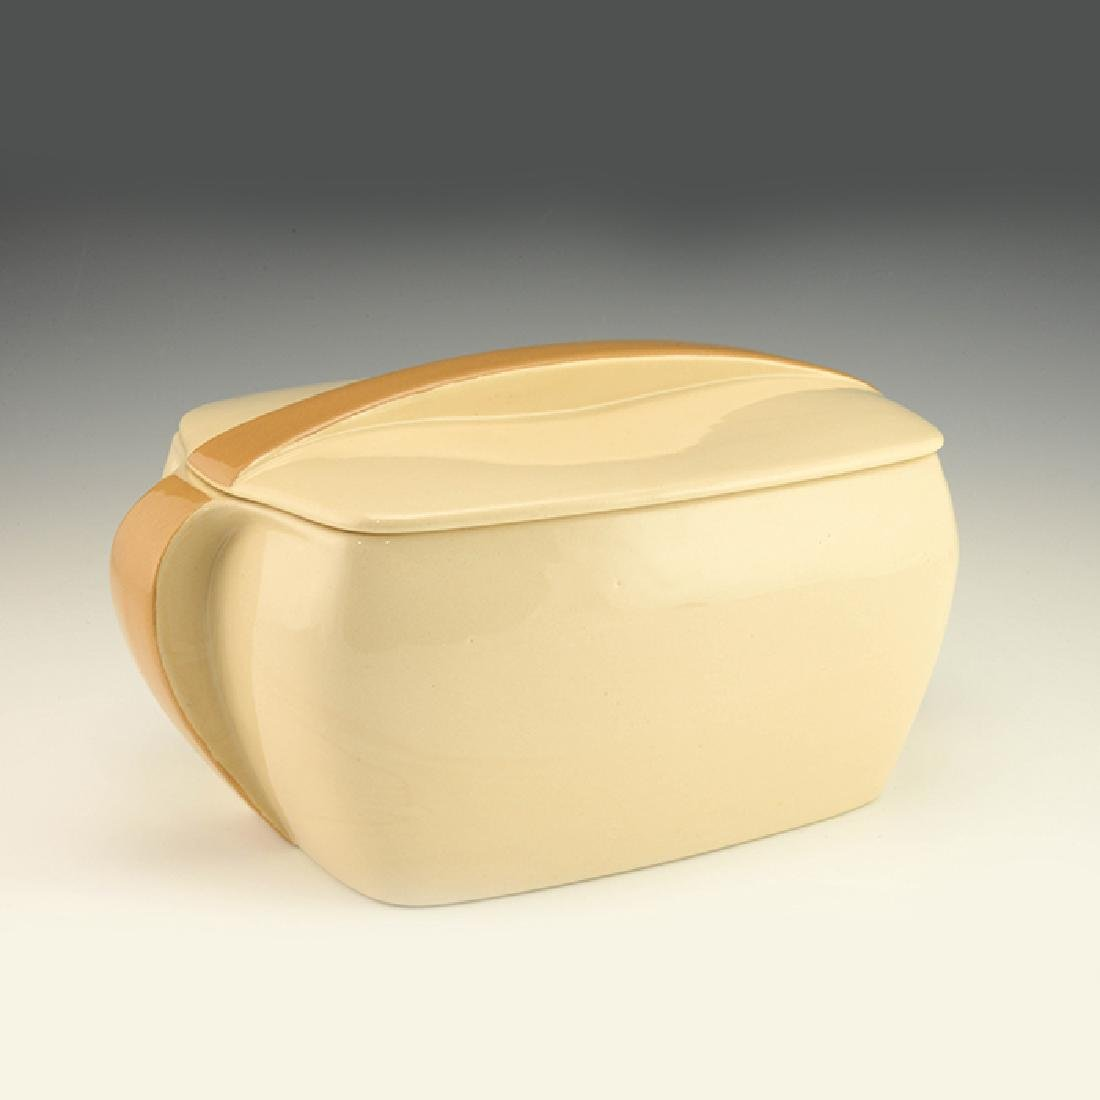 Eva Zeisel, a Stratoware Casserole or Vegetable Dish - 2